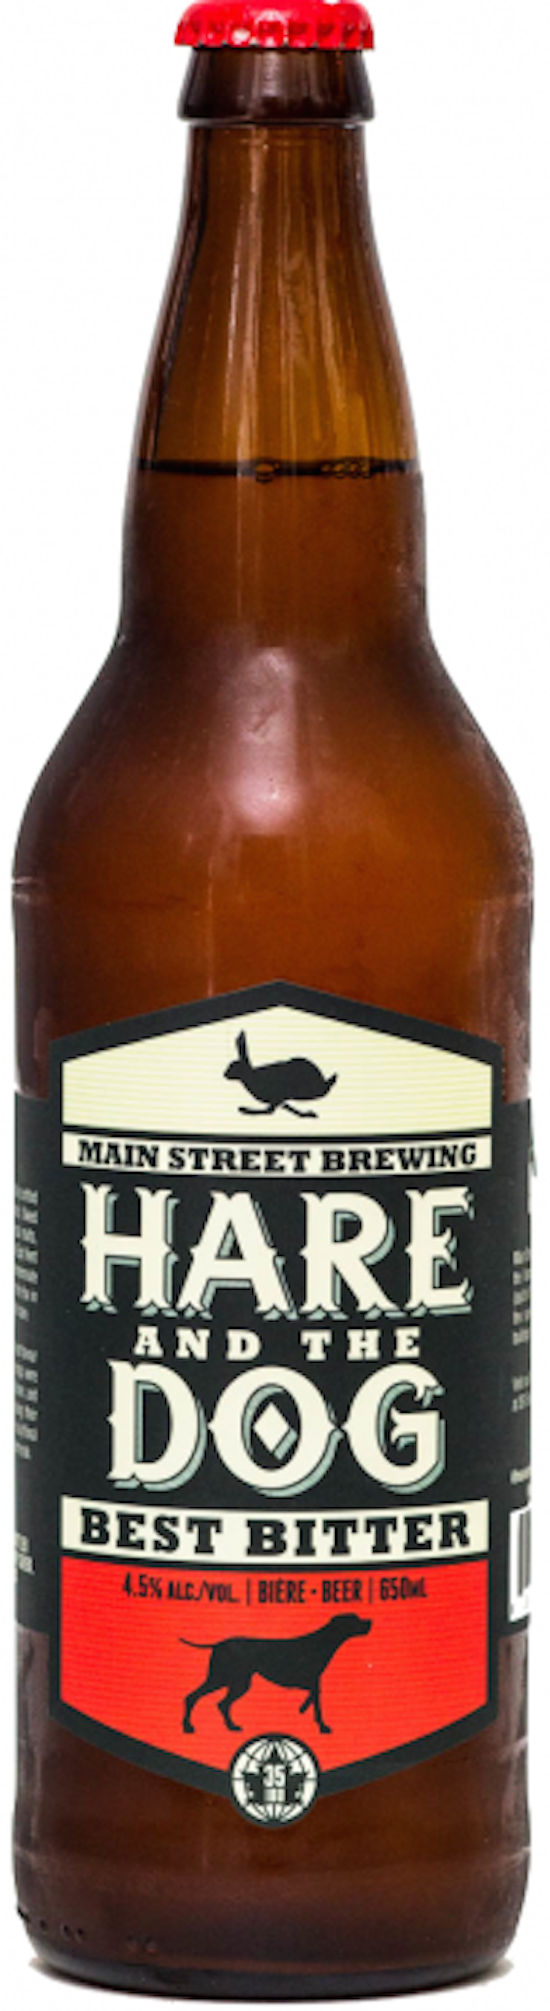 main-street-brewing-company-hare-dog_1476214200